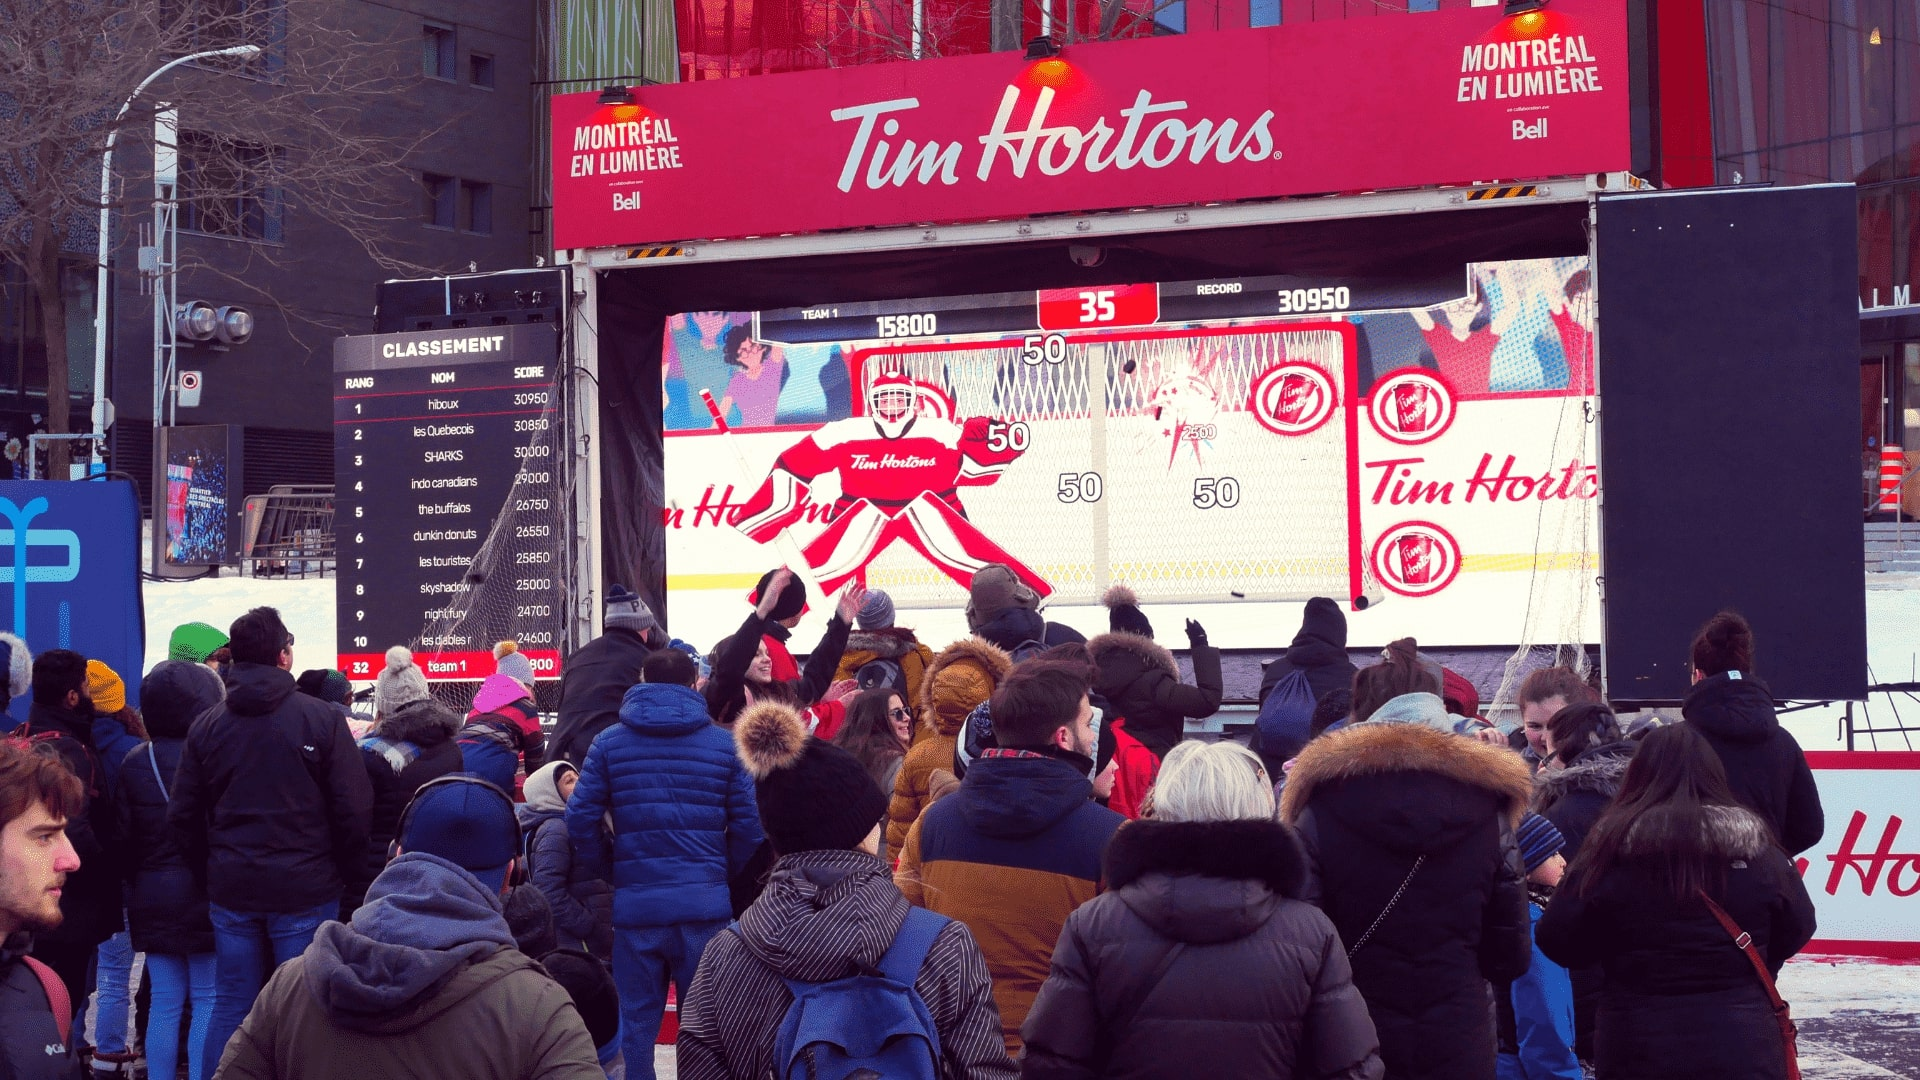 Tim Hortons brand activation